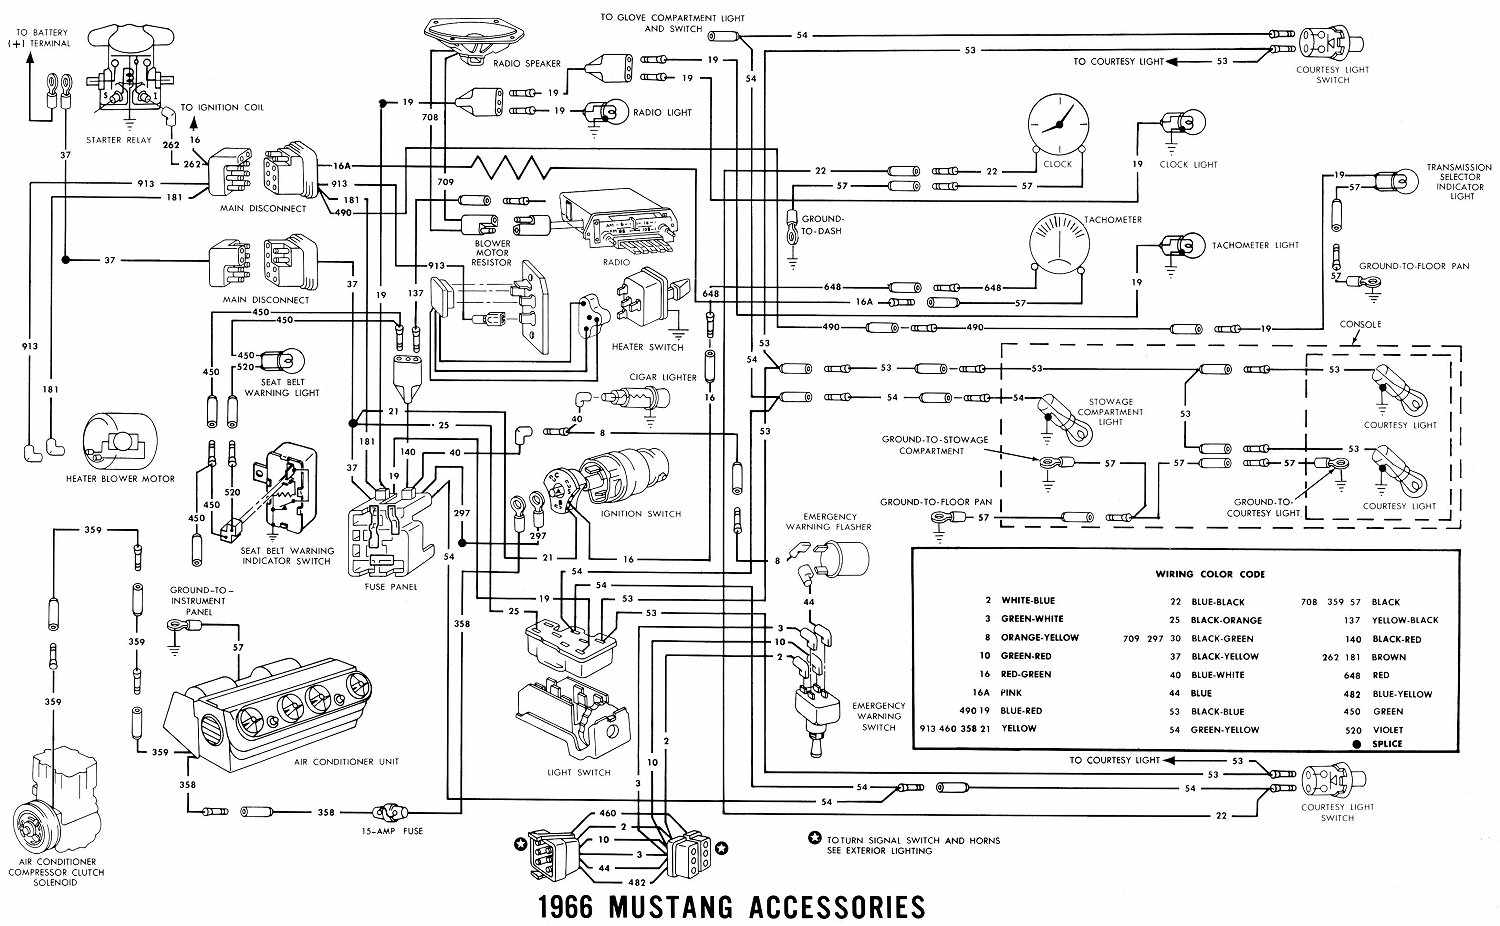 hight resolution of wiring diagrams 911 1966 mustang complete accessories wiring diagram pac 80 goldwing wiring diagram 1966